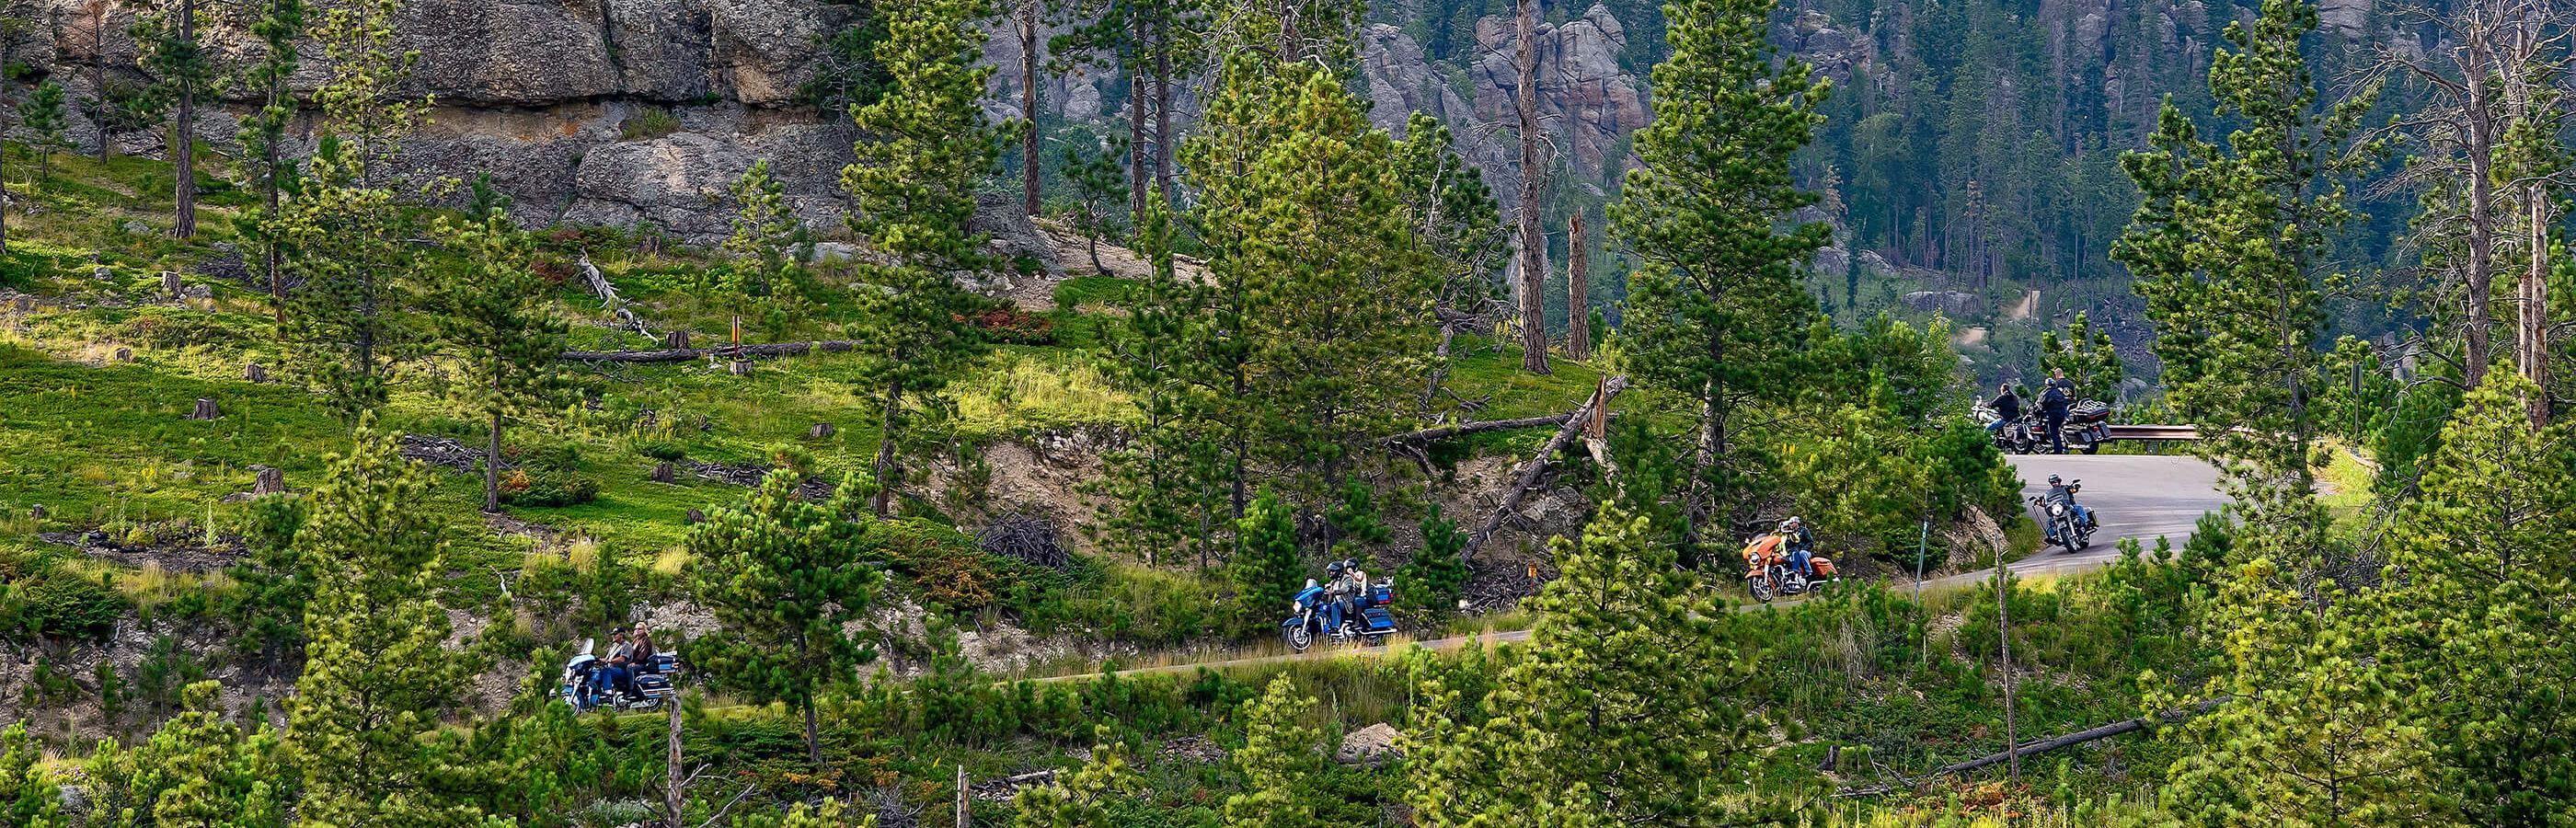 Cruising in the Black Hills National Forest